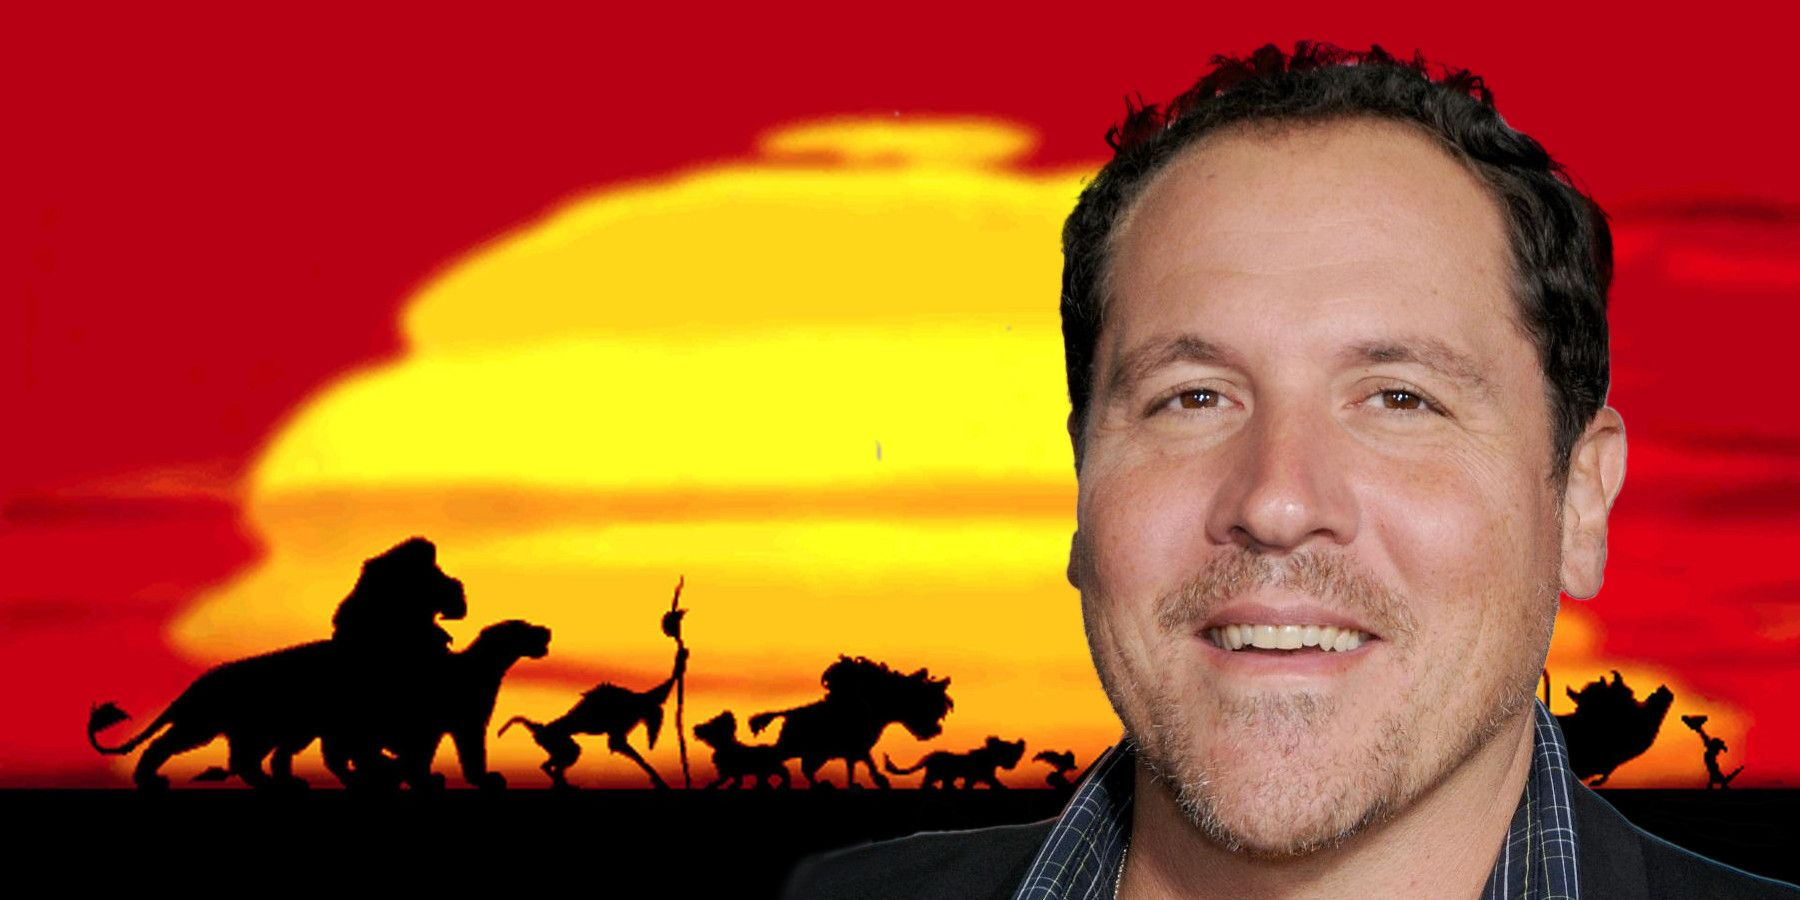 Here's A Photo Of The Lion King Cast & Jon Favreau At Work